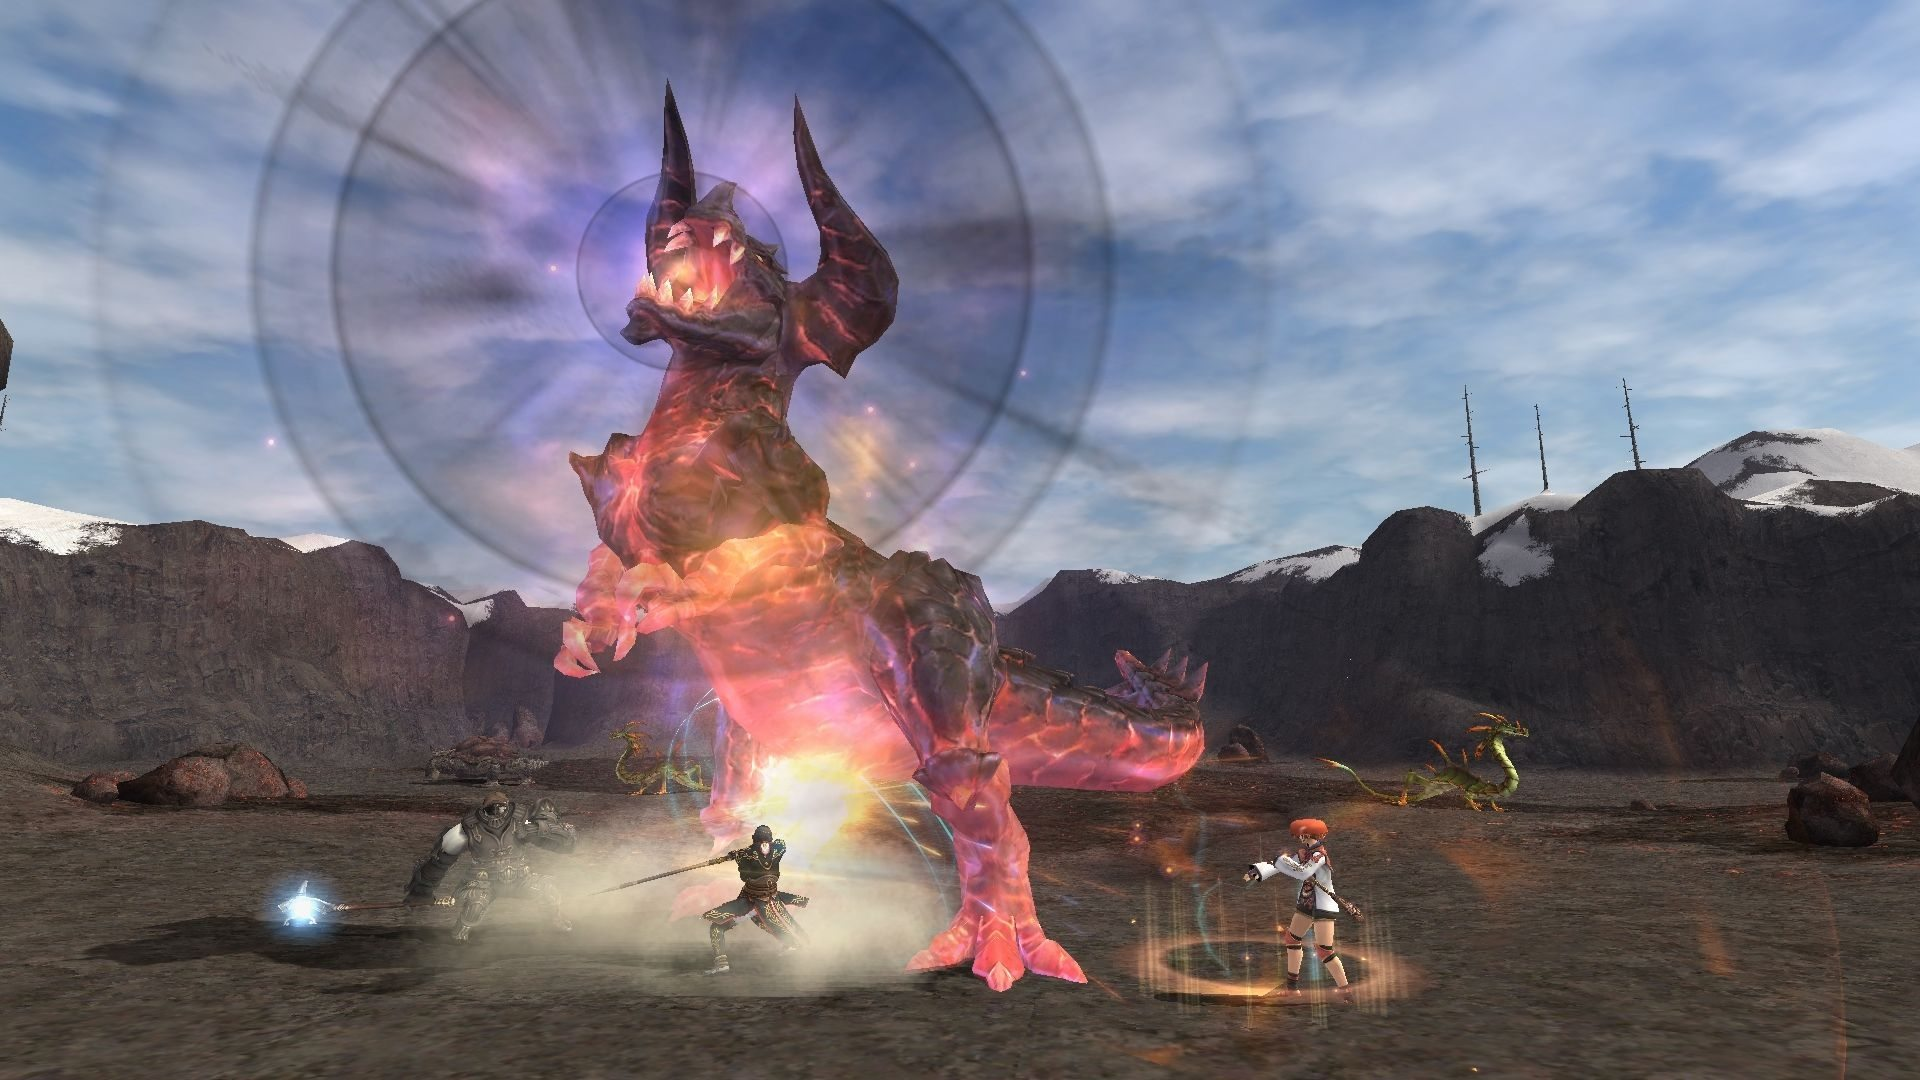 Final Fantasy XI - The Voracious Resurgence Third Update Released